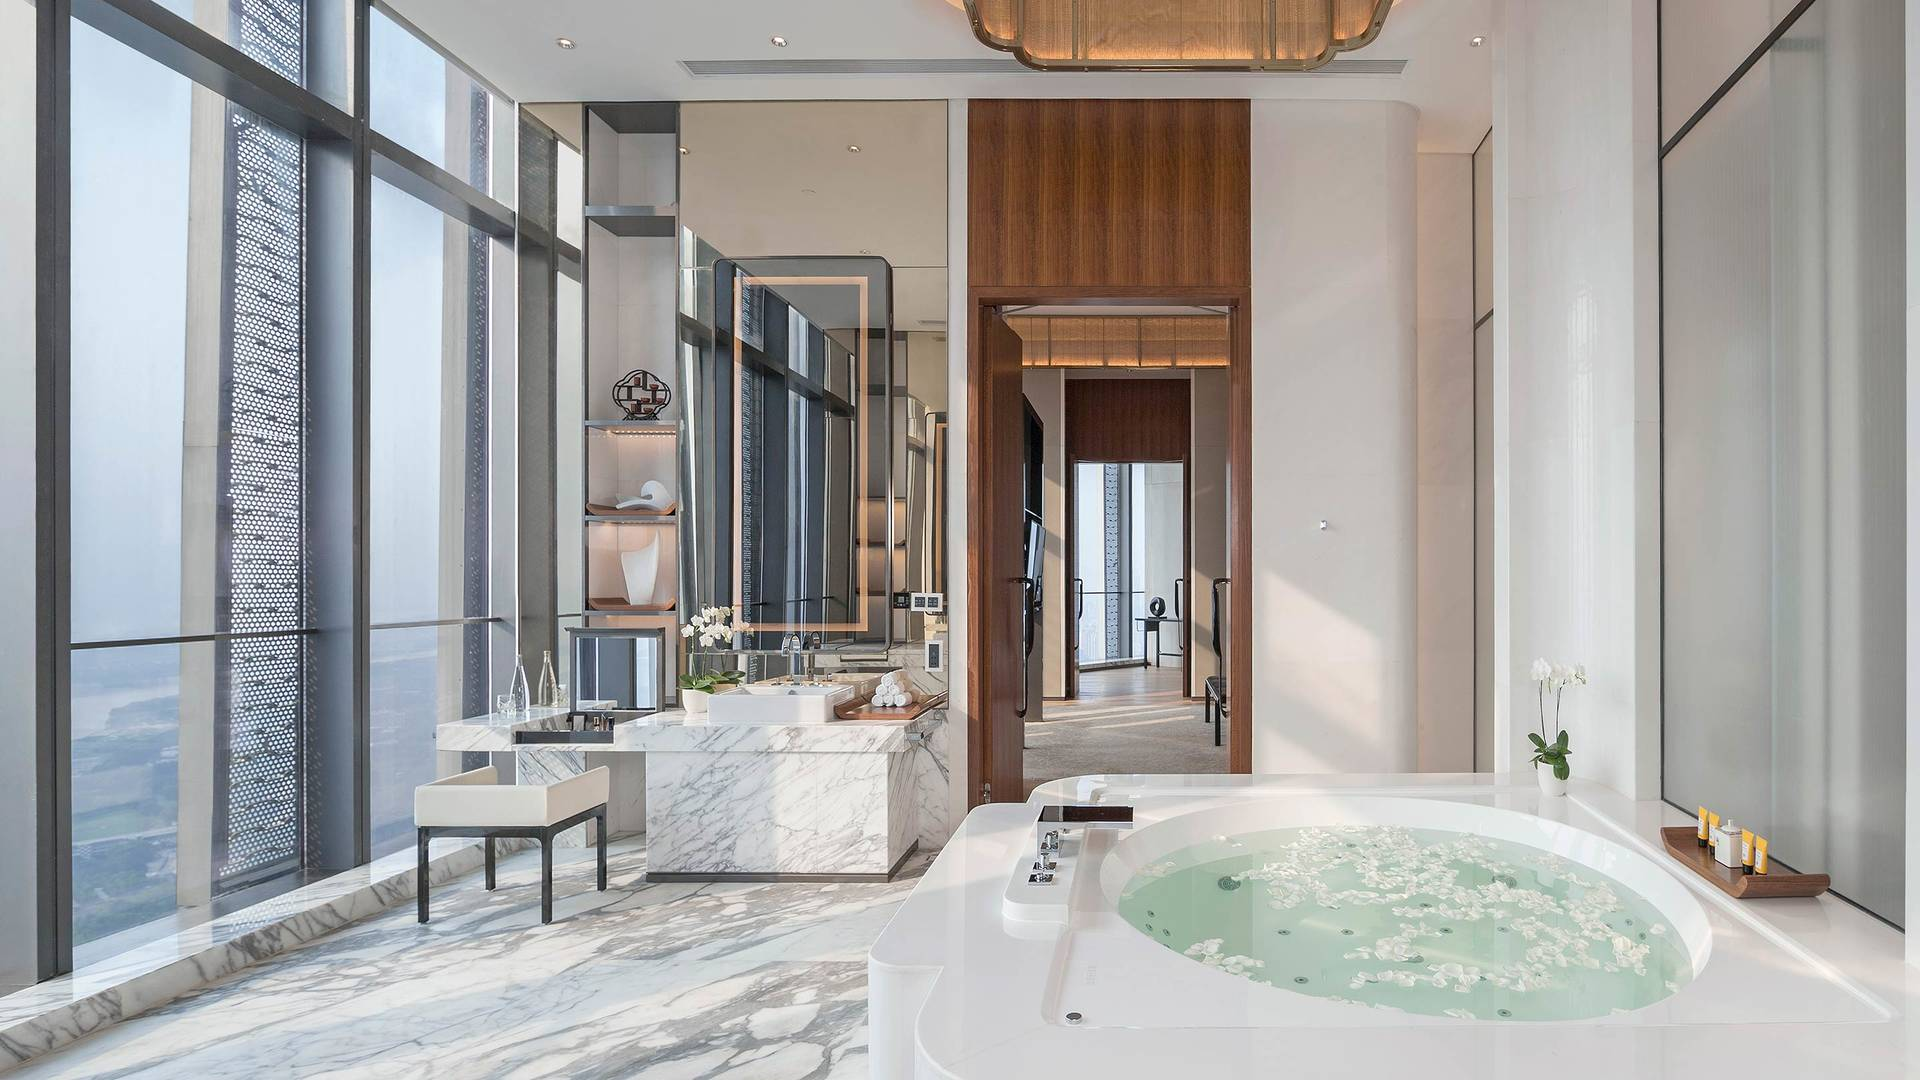 Jumeirah Nanjing Presidential suite business bathroom_16-9